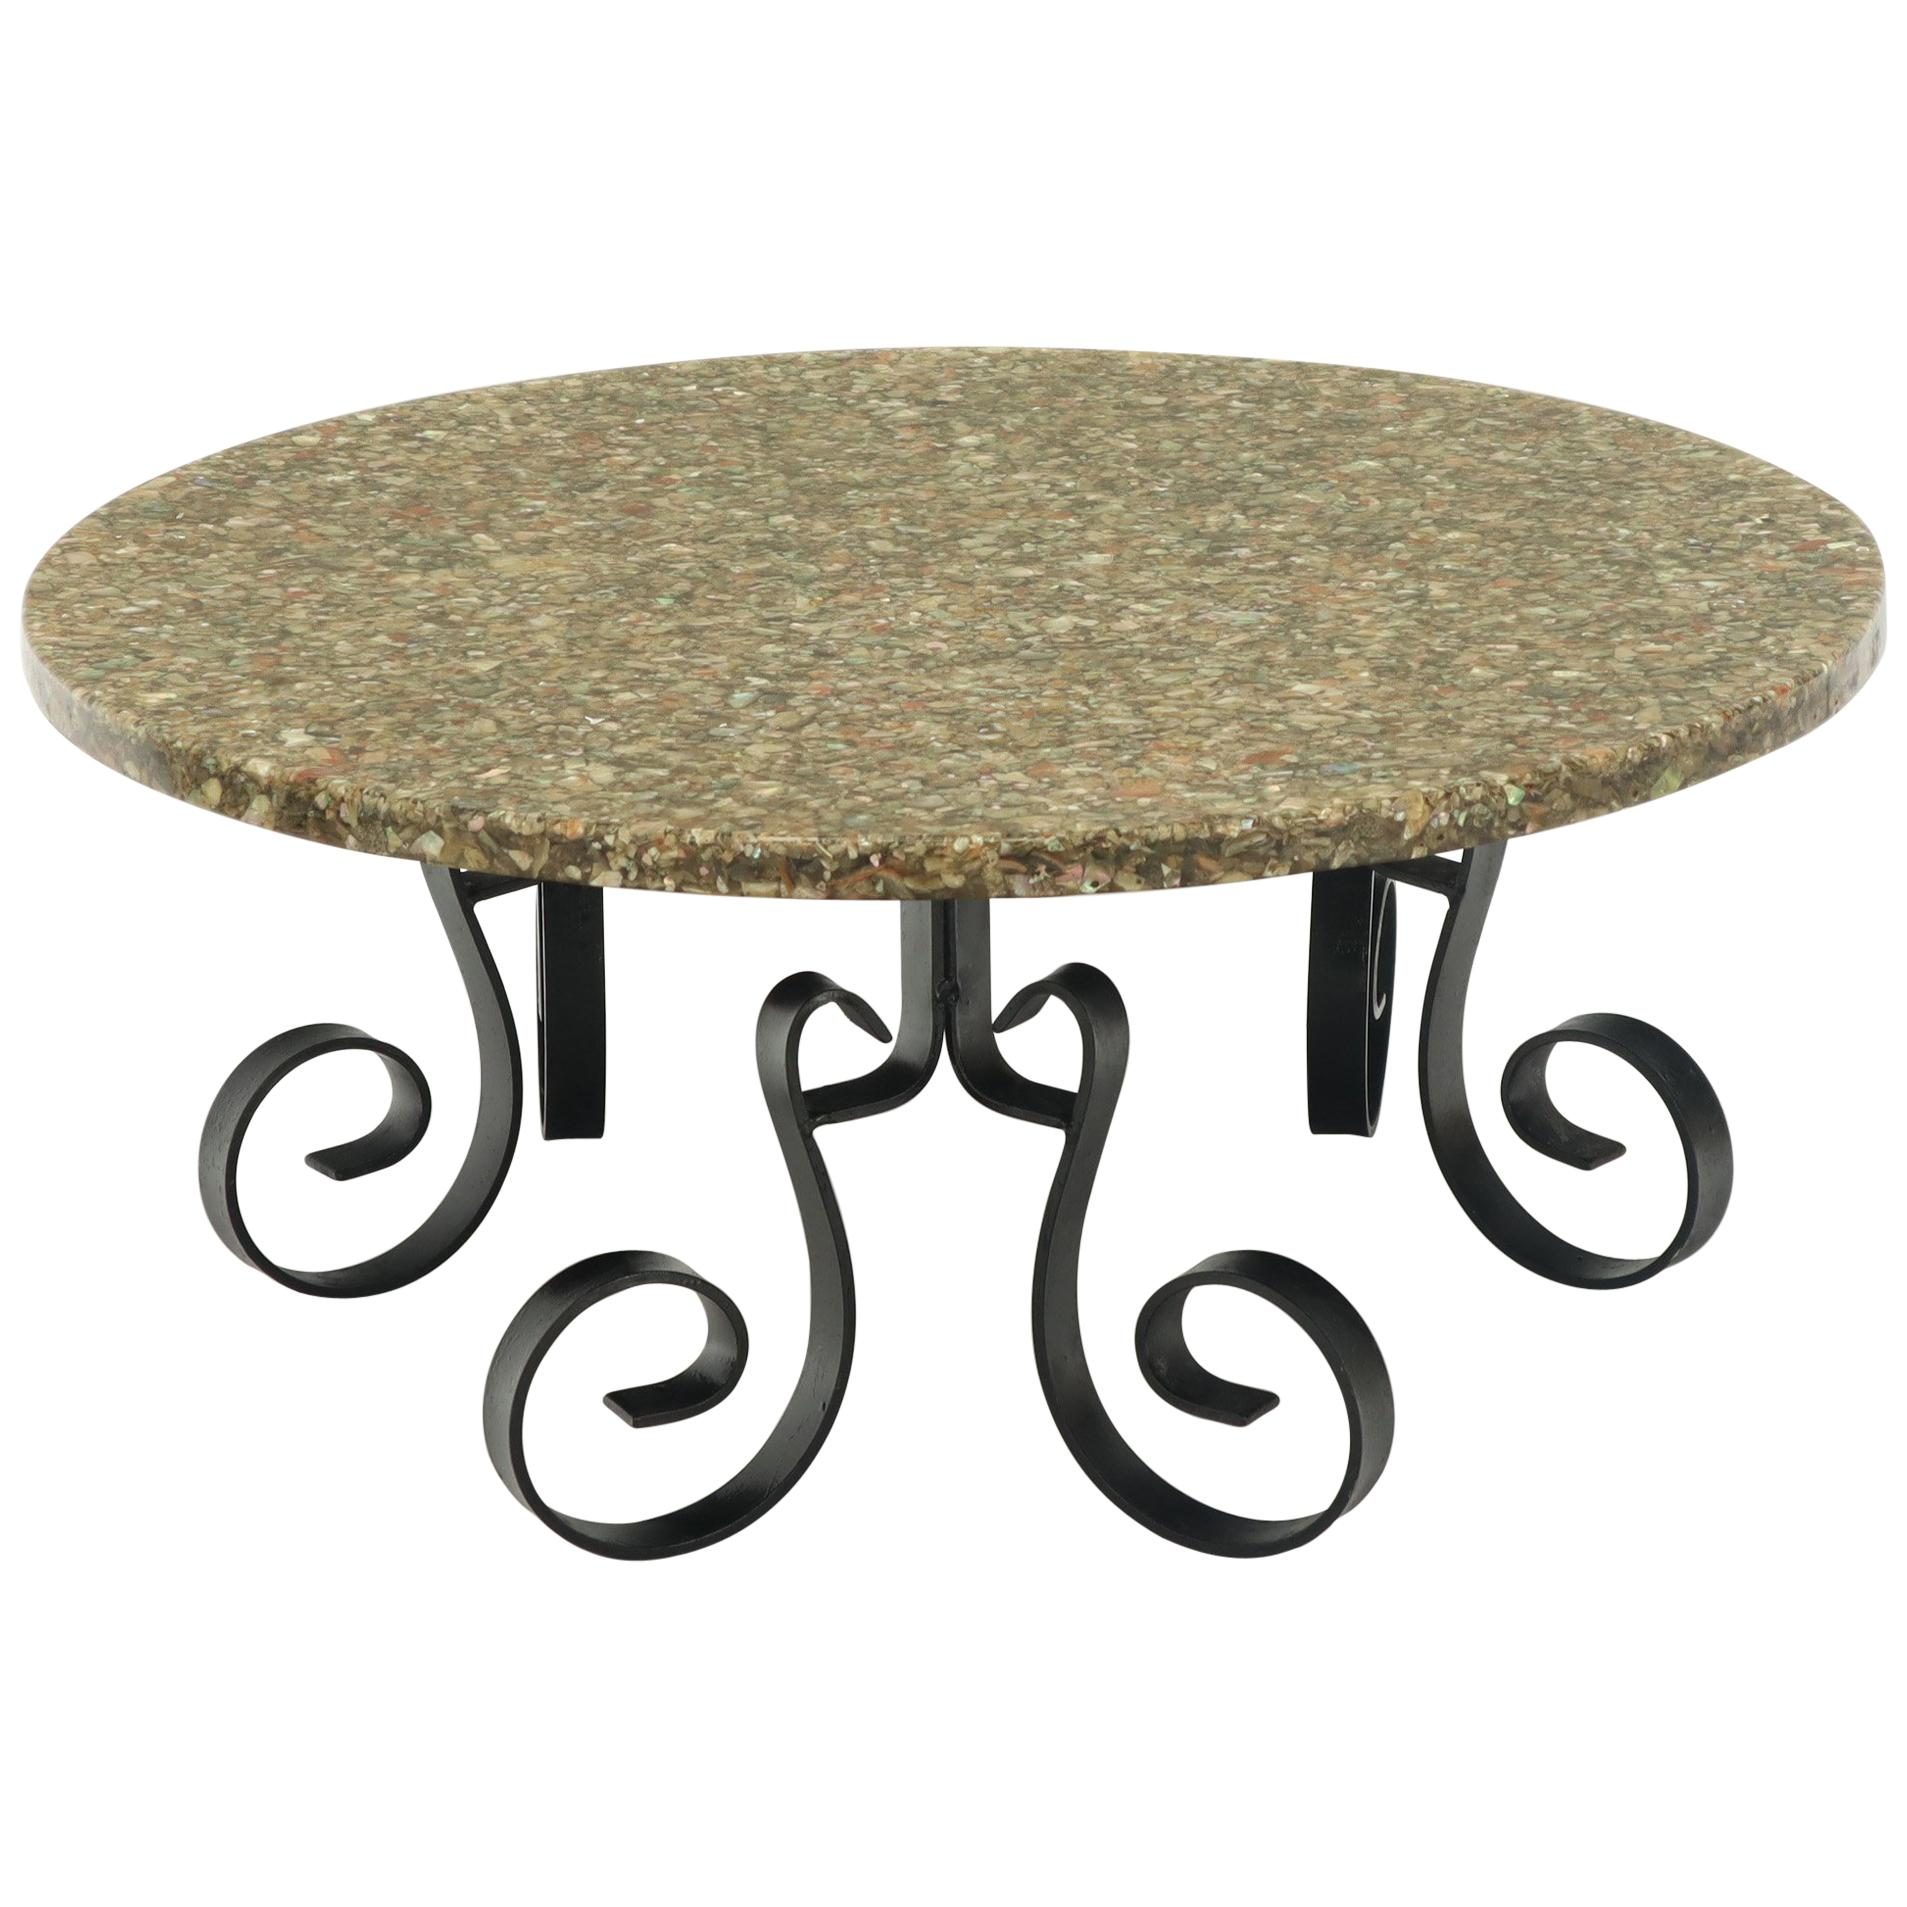 Wrought Iron Base Abalone Composite Round Top Coffee Table